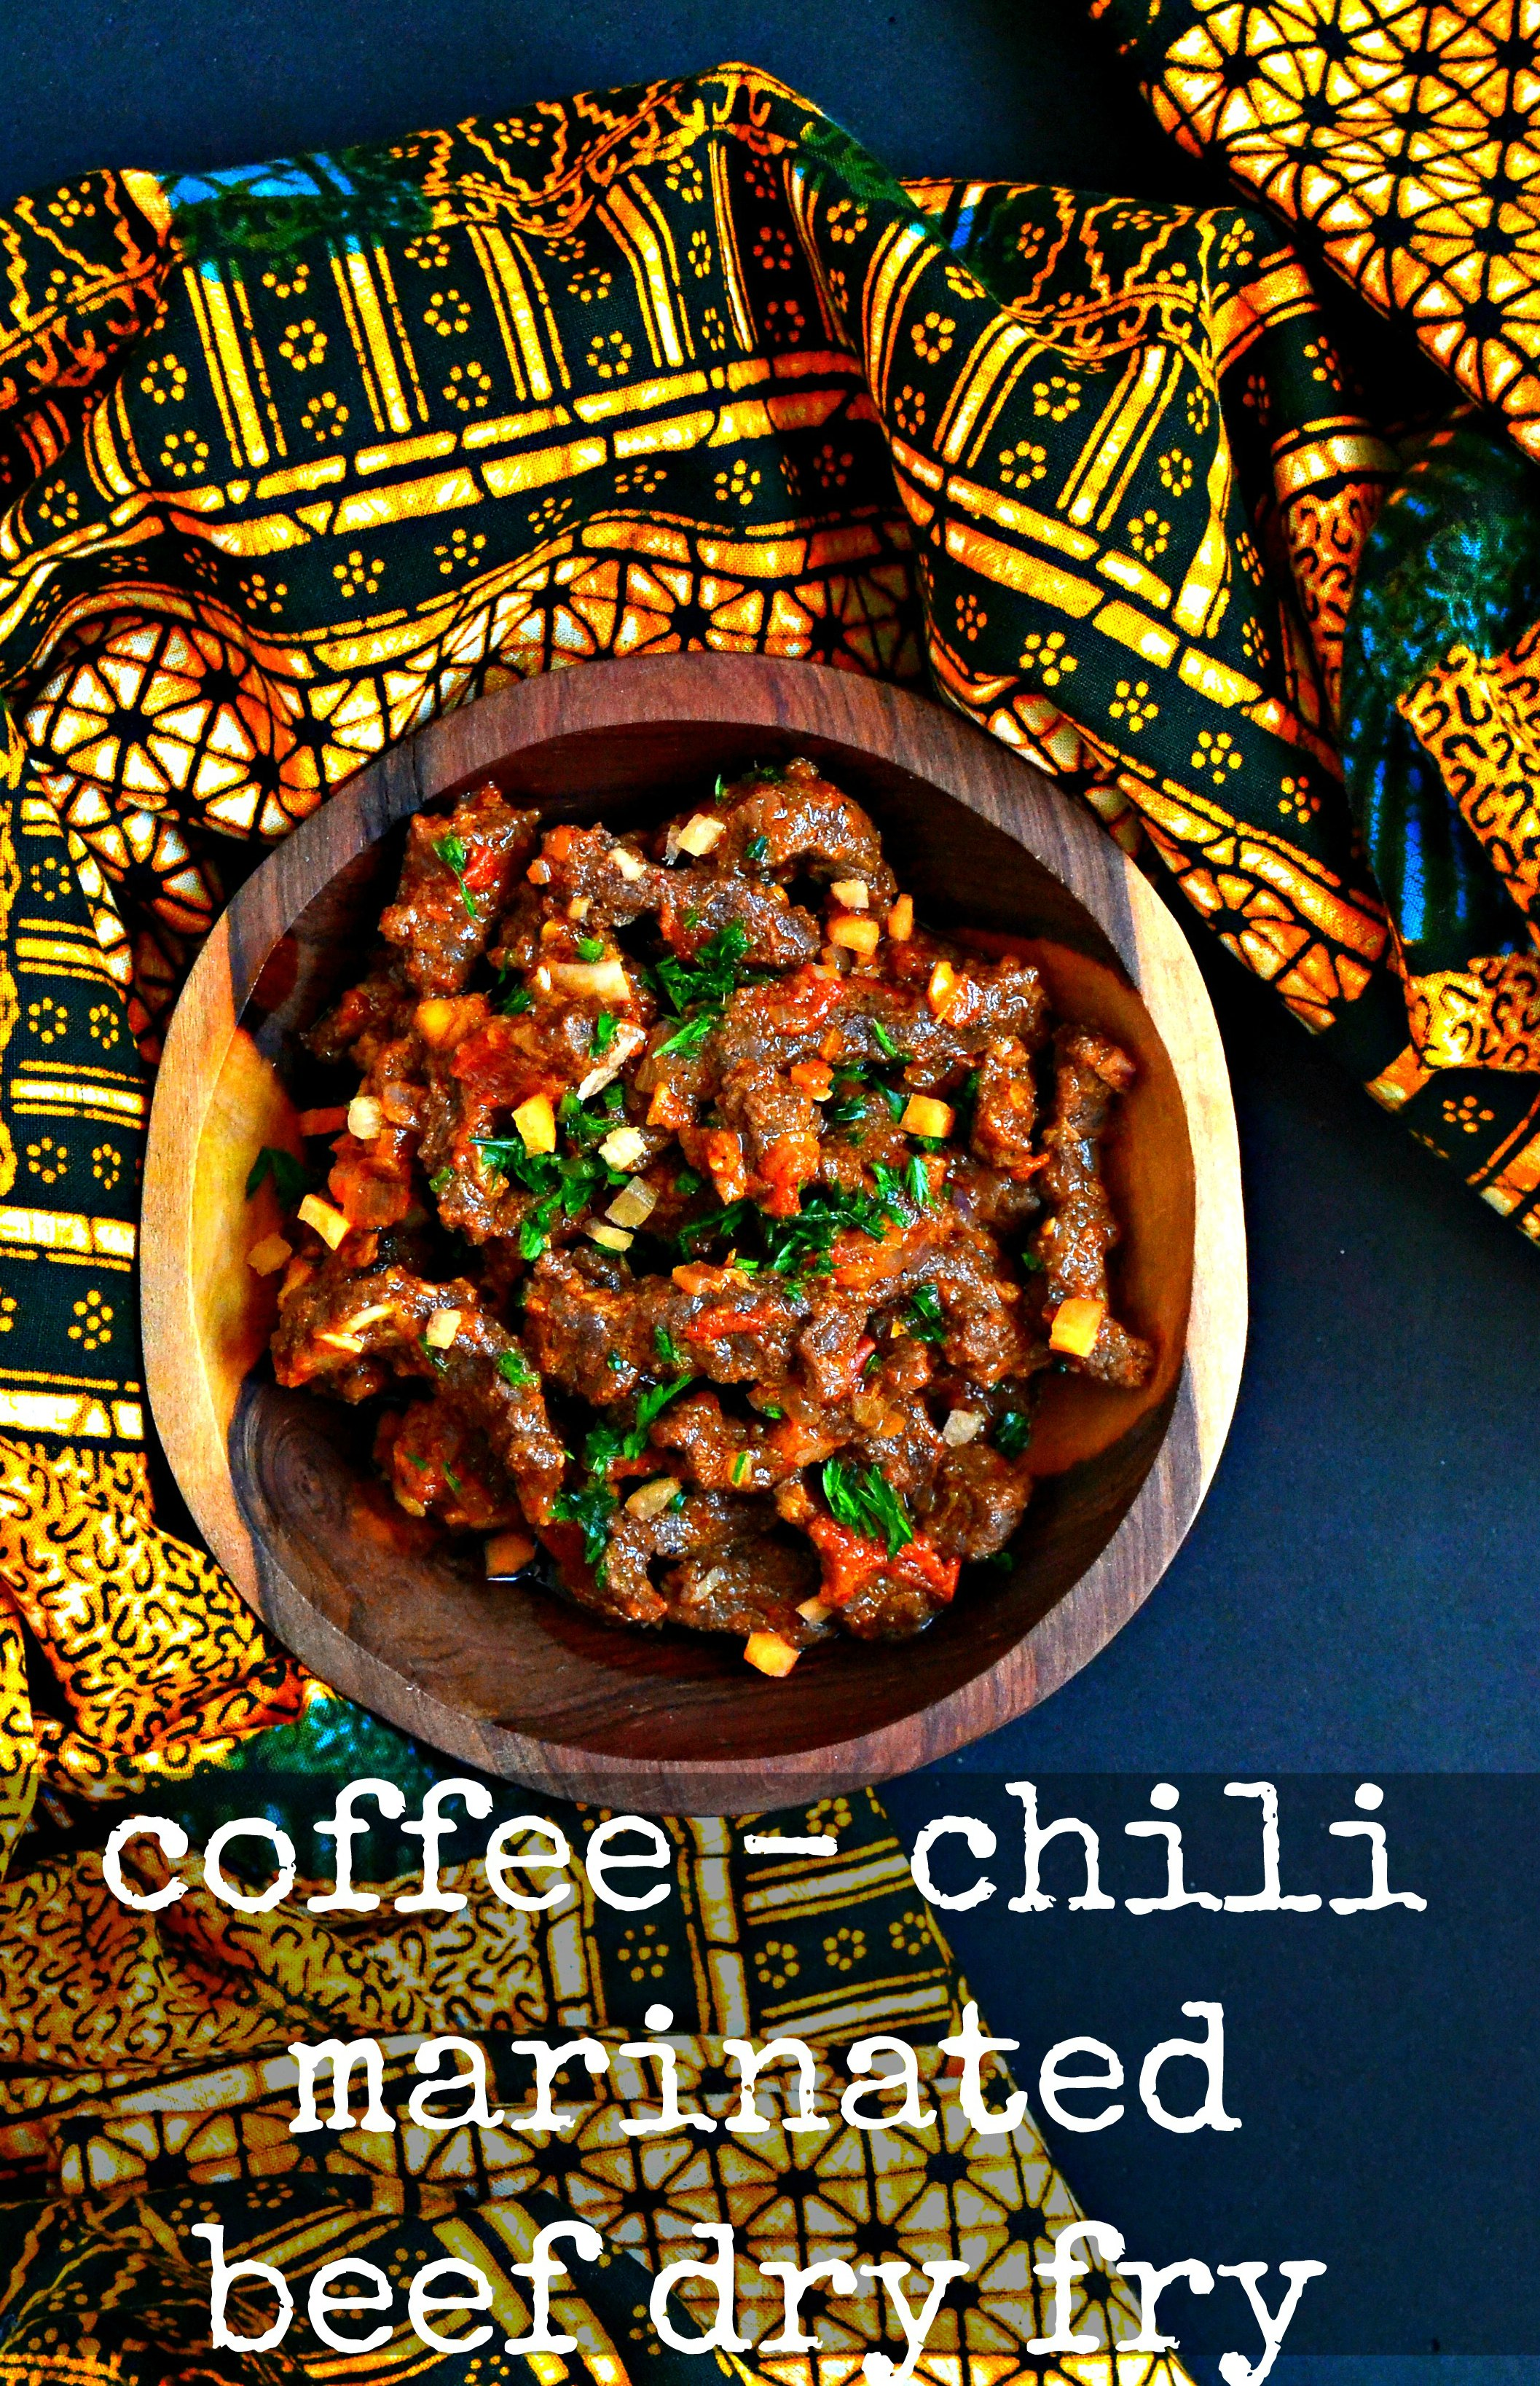 coffee-and-chili-marinated-beef-dry-fry_1_how-to-make-a-beef-dry-fry_kaluhi-recipes_kenyan-food-bloggers_african-food-bloggers_kal